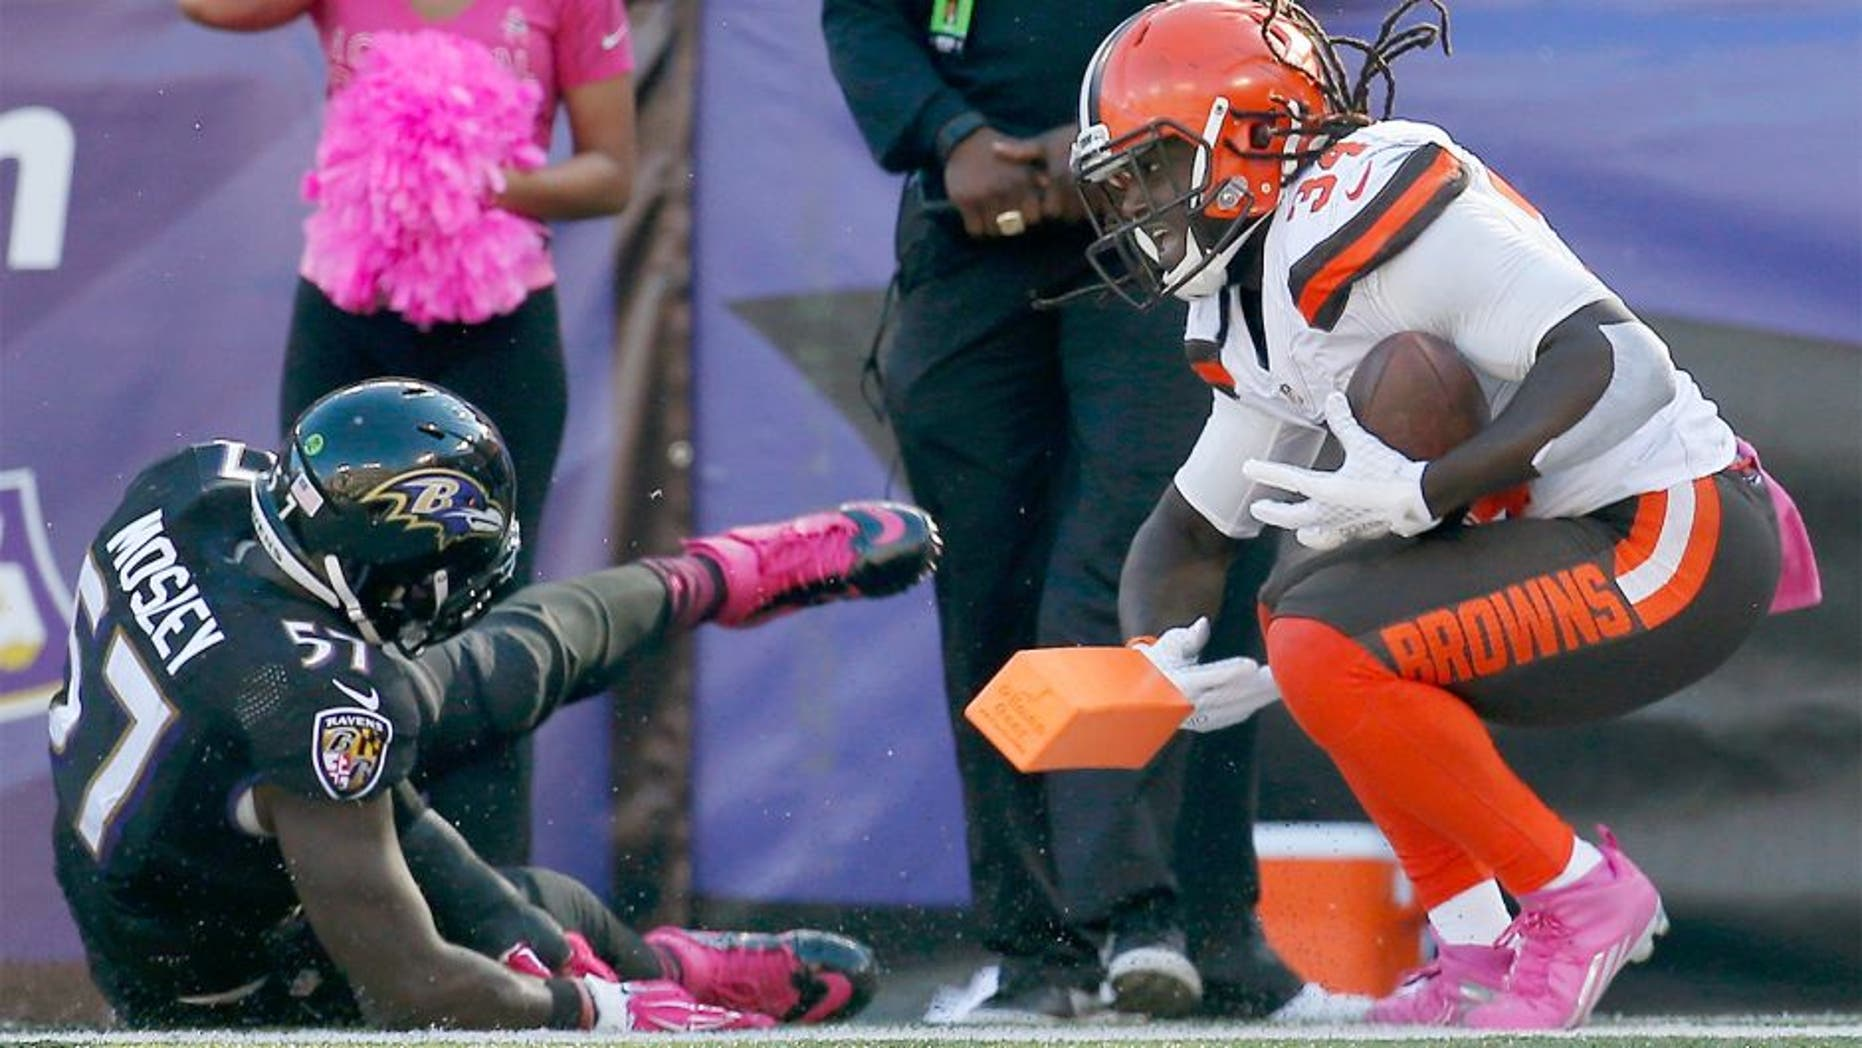 BALTIMORE, MD - OCTOBER 11: Running back Isaiah Crowell #34 of the Cleveland Browns reacts after scoring a second half touchdown in front of inside linebacker C.J. Mosley #57 of the Baltimore Ravens at M&T Bank Stadium on October 11, 2015 in Baltimore, Maryland. (Photo by Rob Carr/Getty Images)